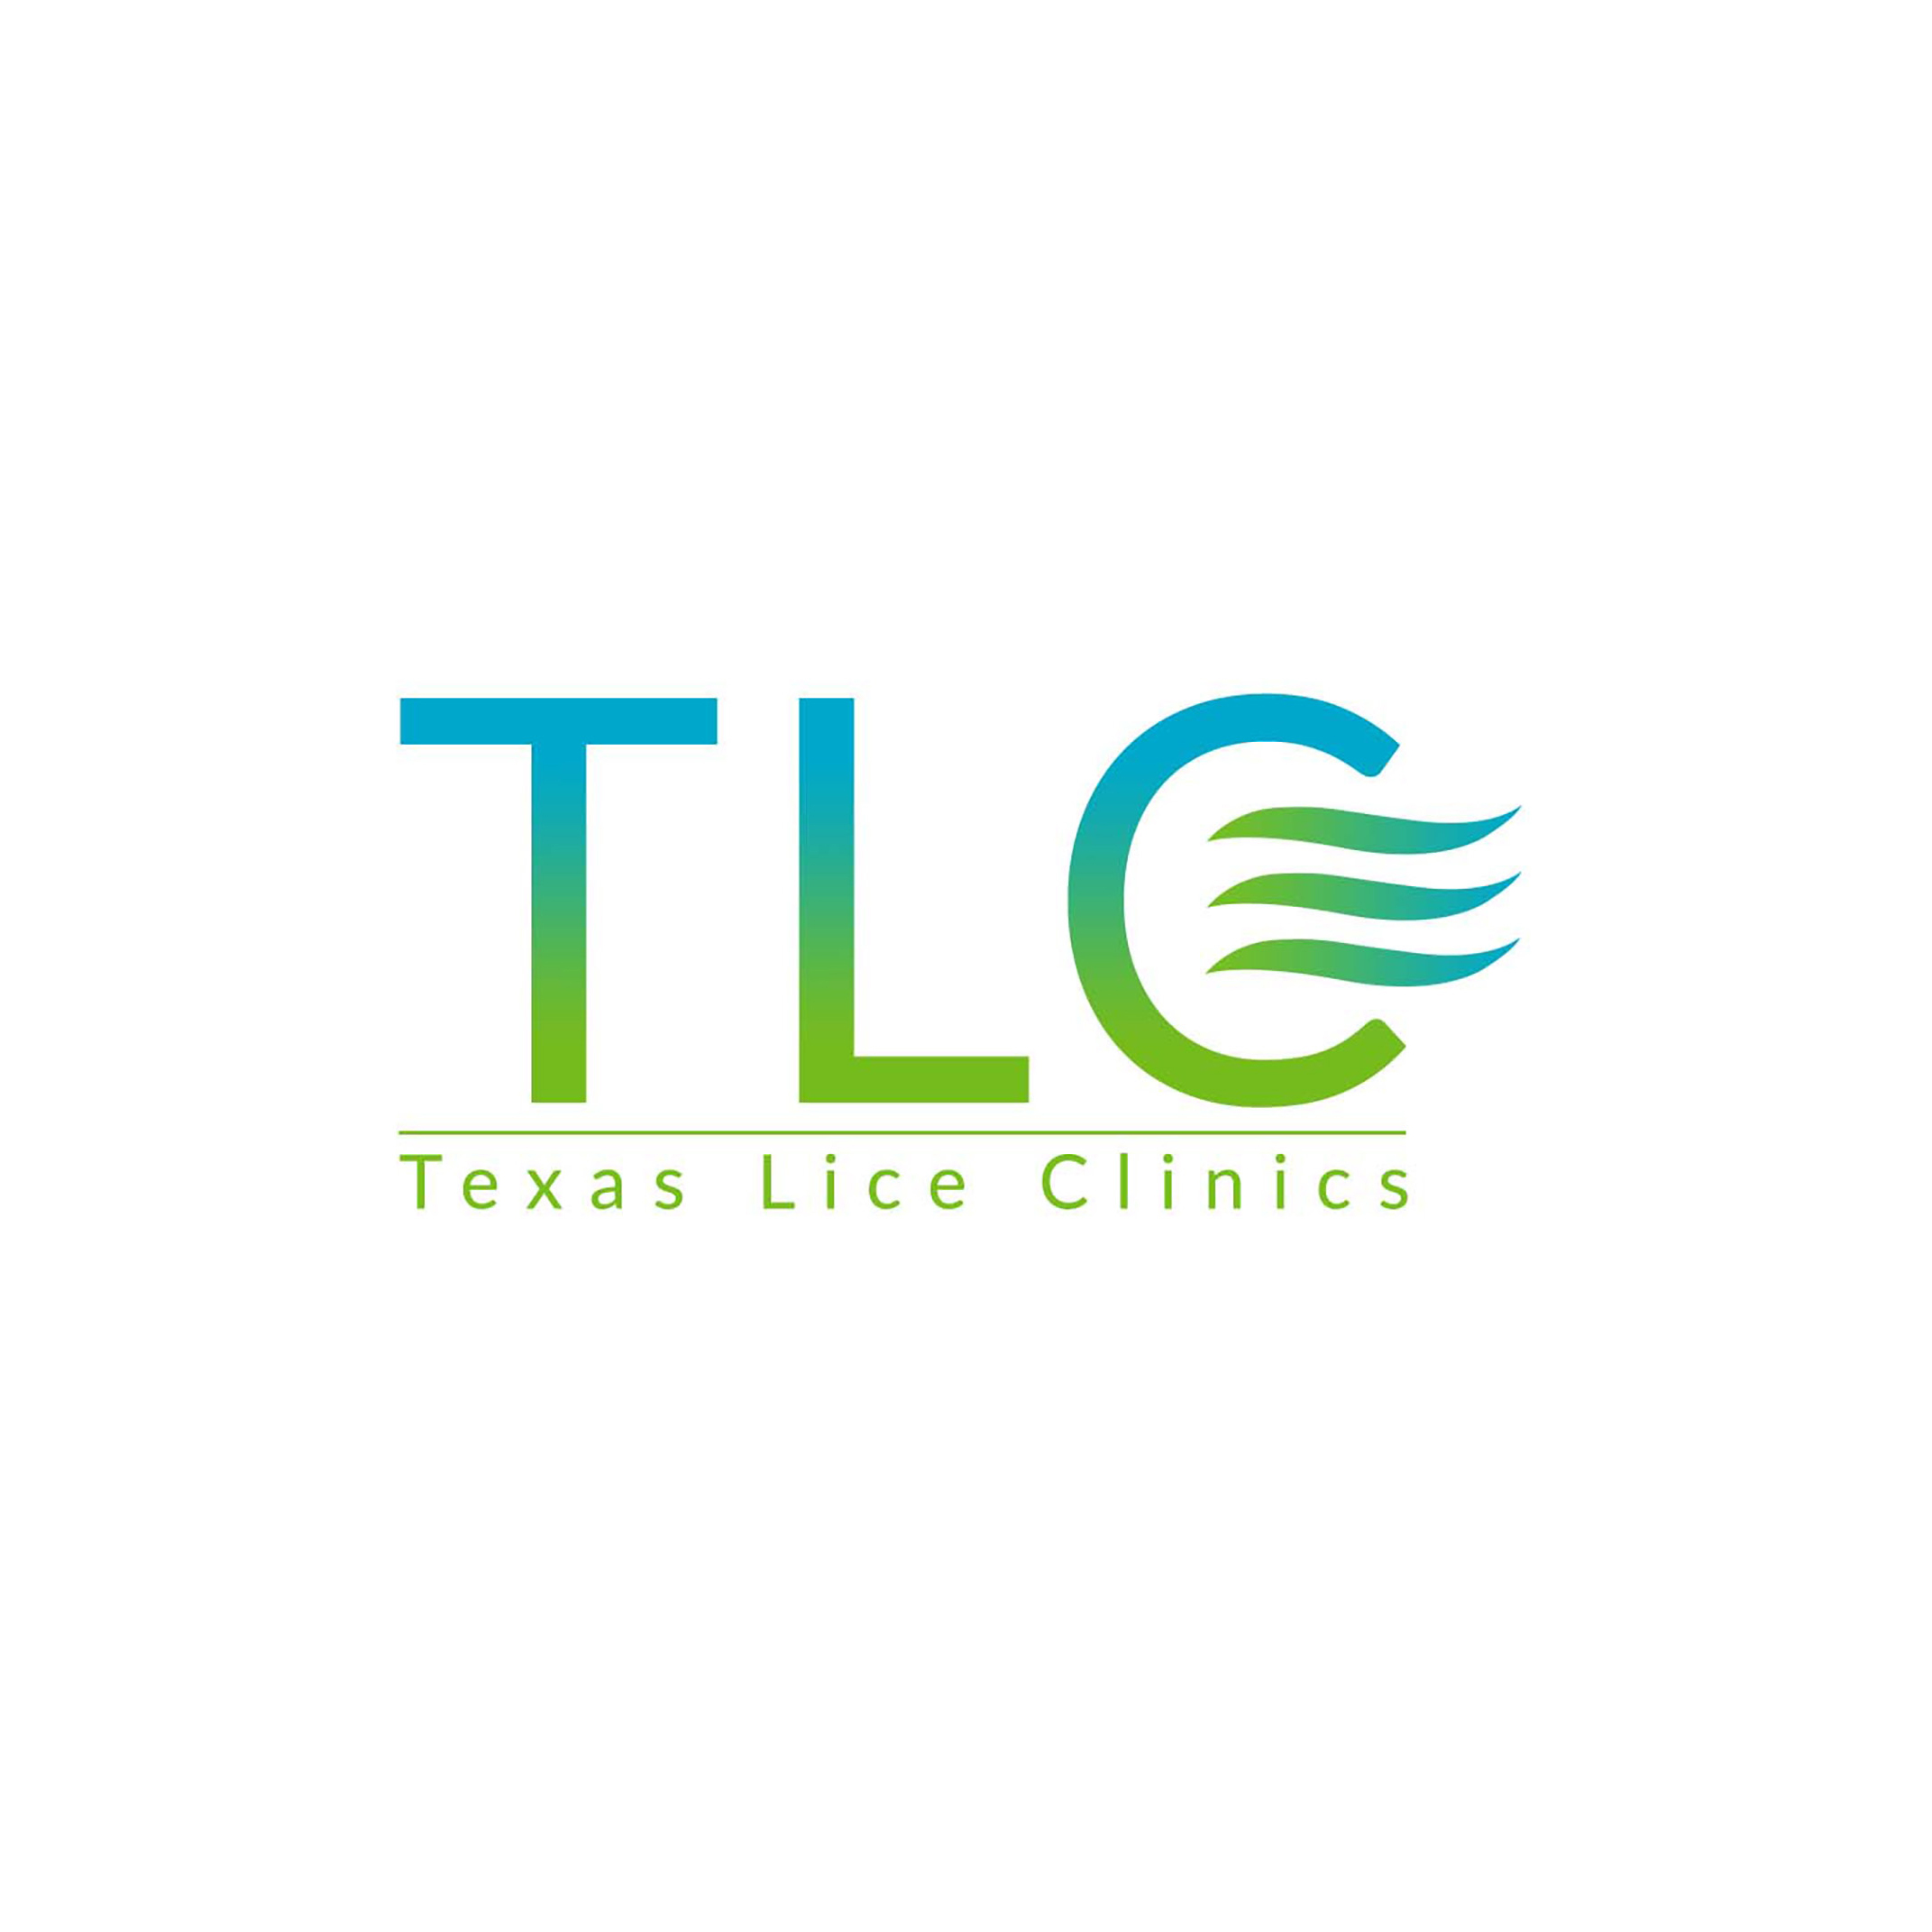 Texas Lice Clinics